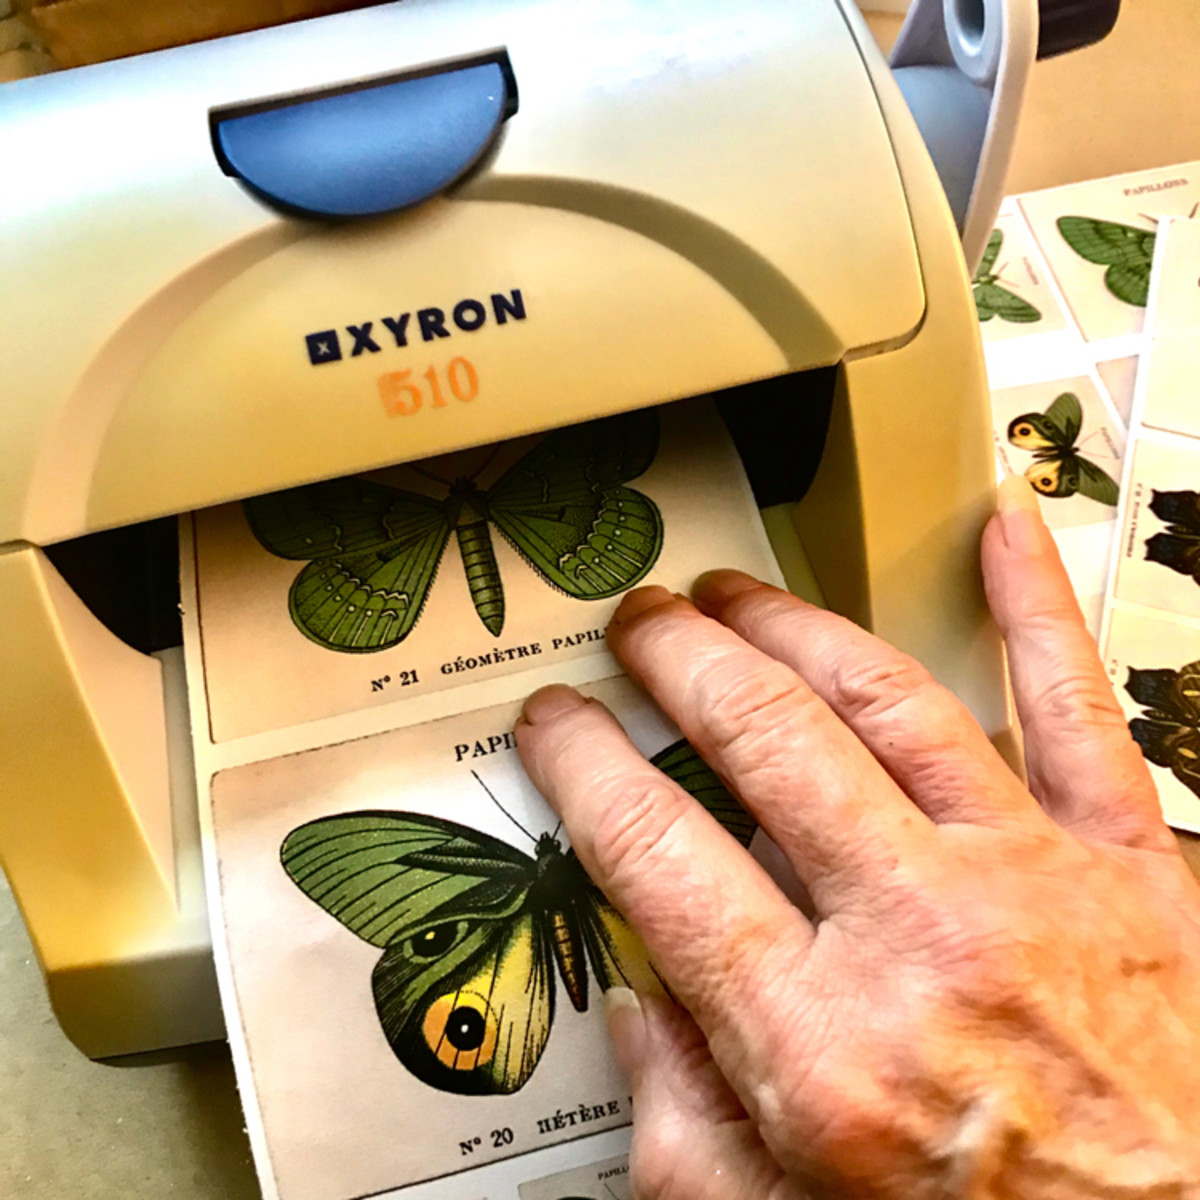 You can make all kinds of custom stickers with the Xyron machines